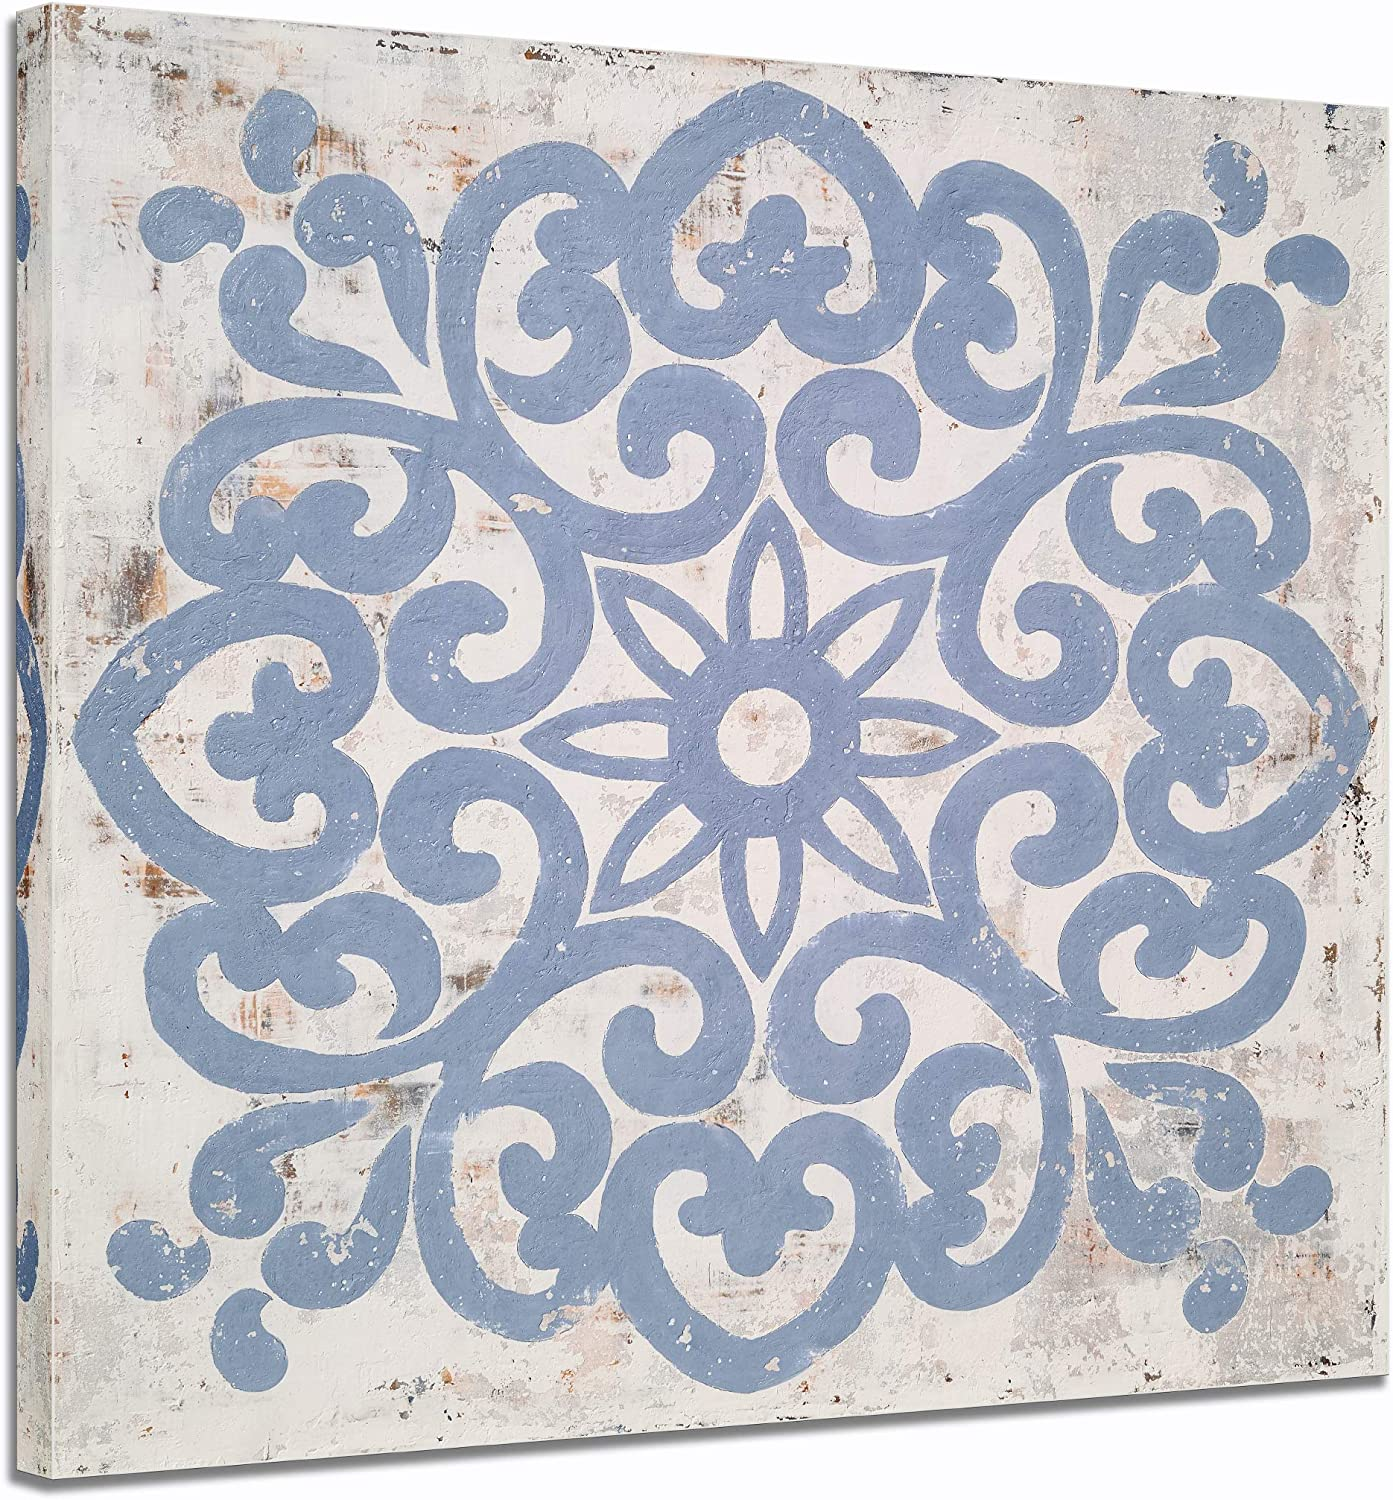 Yihui Arts Boho Canvas Wall Art Hand Painted Blue and White Pictures Modern Abstact Vintage Bohemian Painting for Living Room Bedroom Bathroom Decor